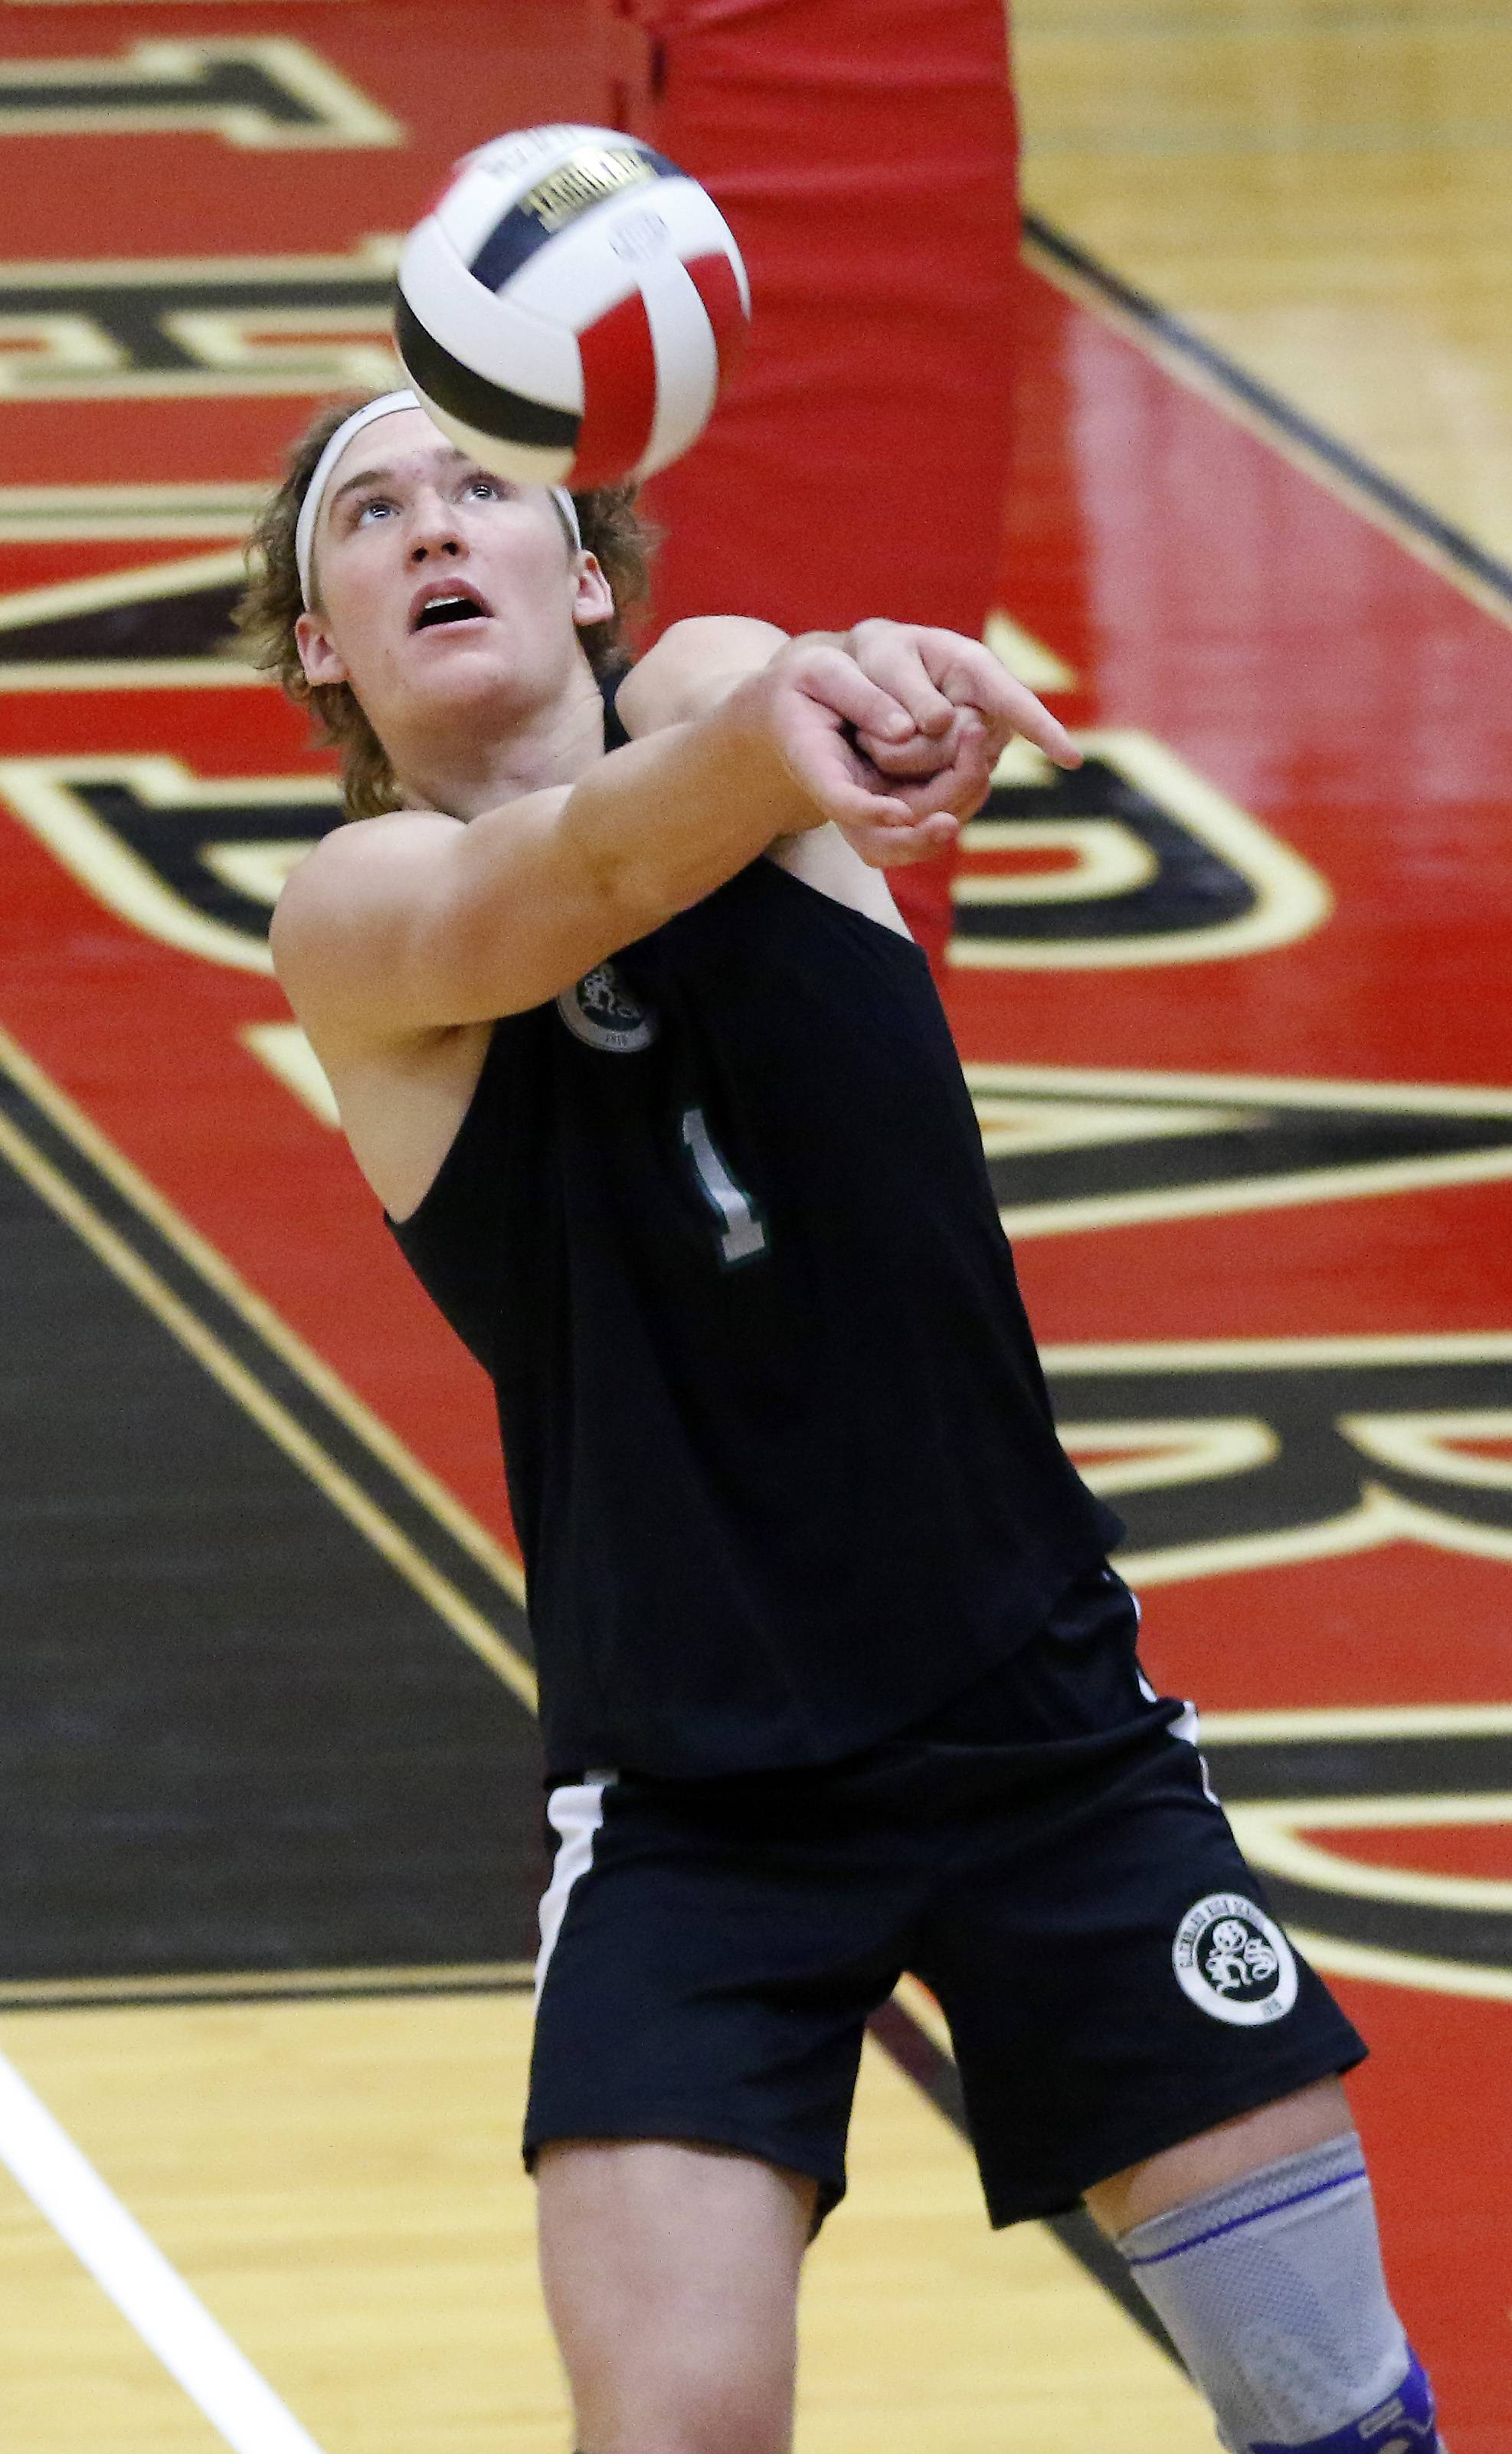 Glenbard West's Ben Harrington, returns a Lake Park shot during the Springfest boys volleyball tournament Saturday at Glenbard East High School in Lombard.